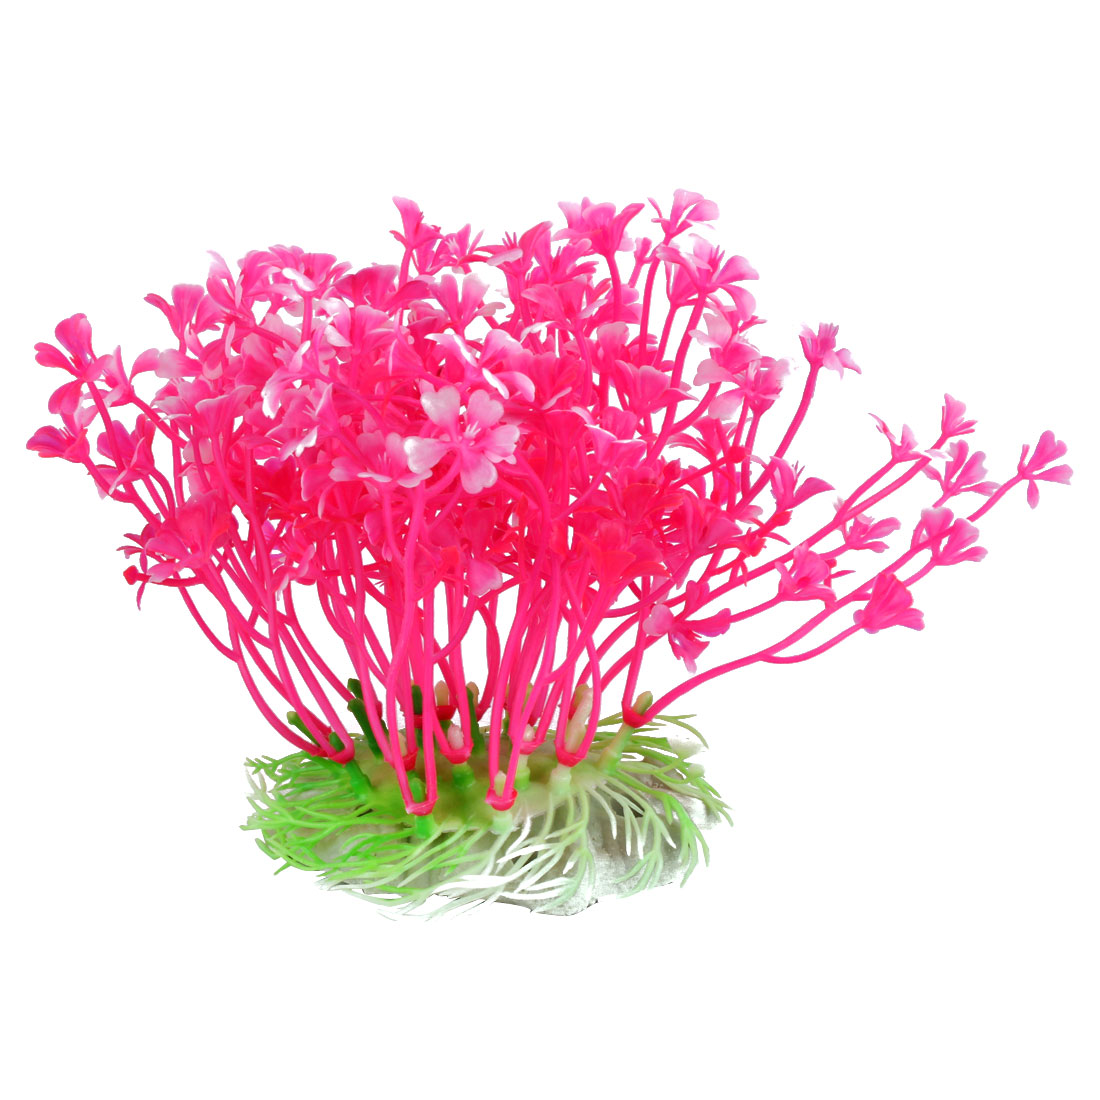 Hot Pnk White Plastic Underwater Ornament for Fish Tank